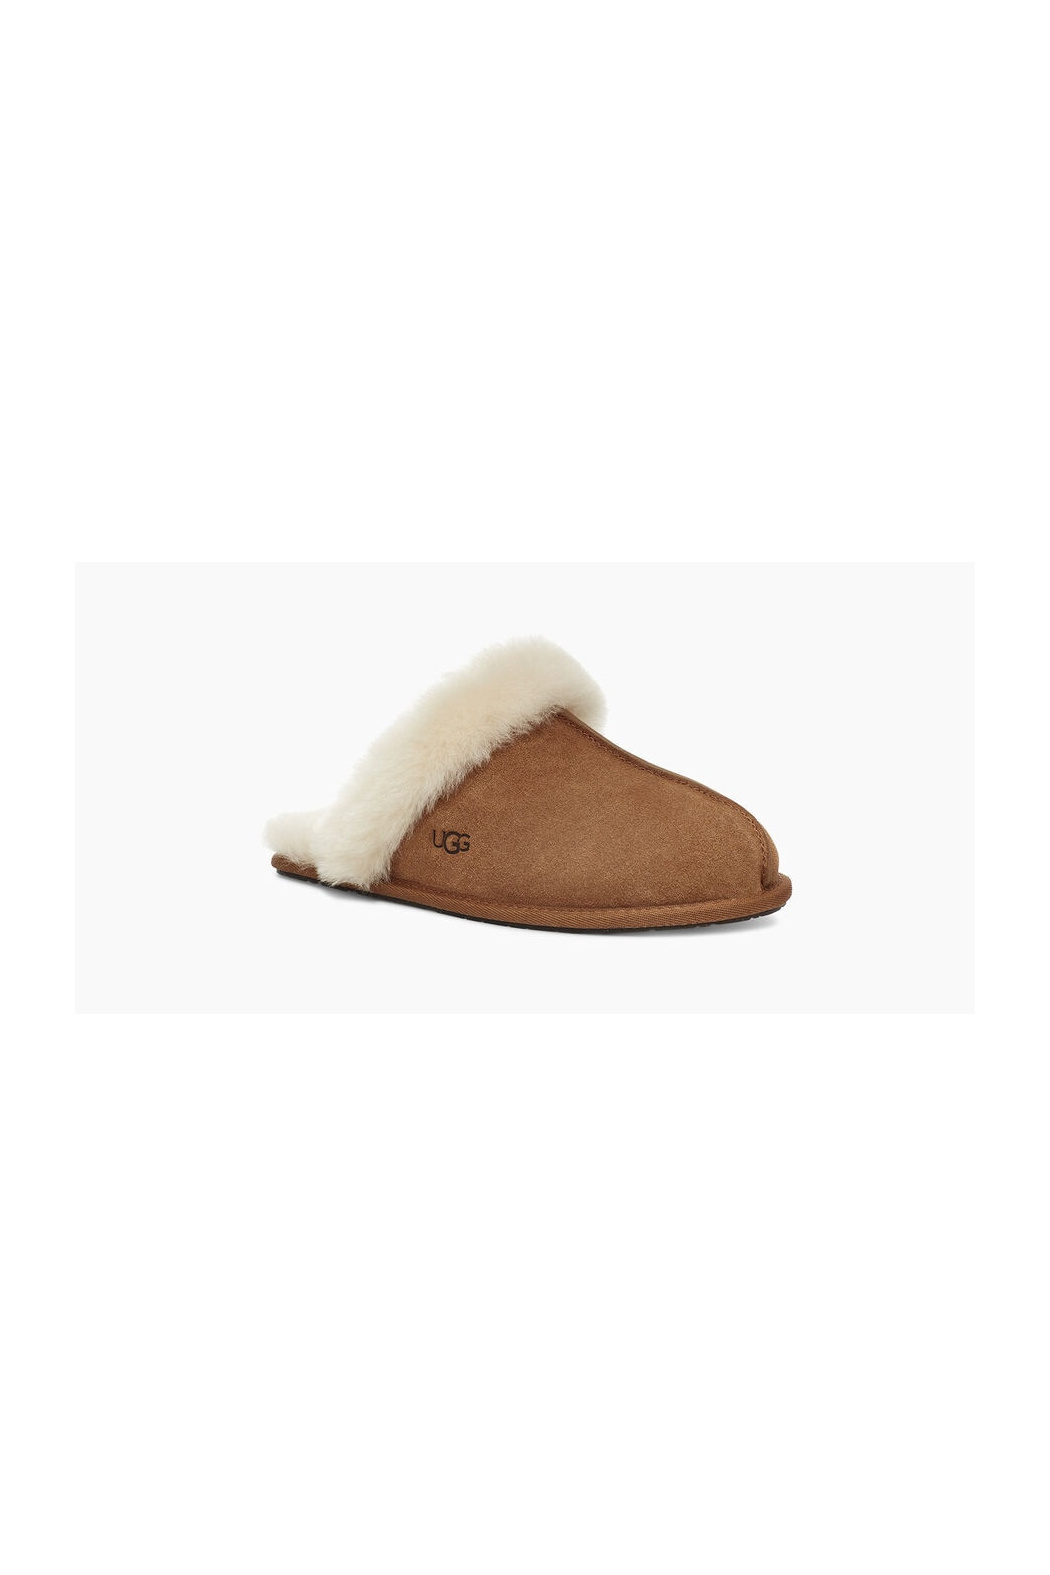 Ugg SCUFFETTE II SLIPPER - Front Cropped Image